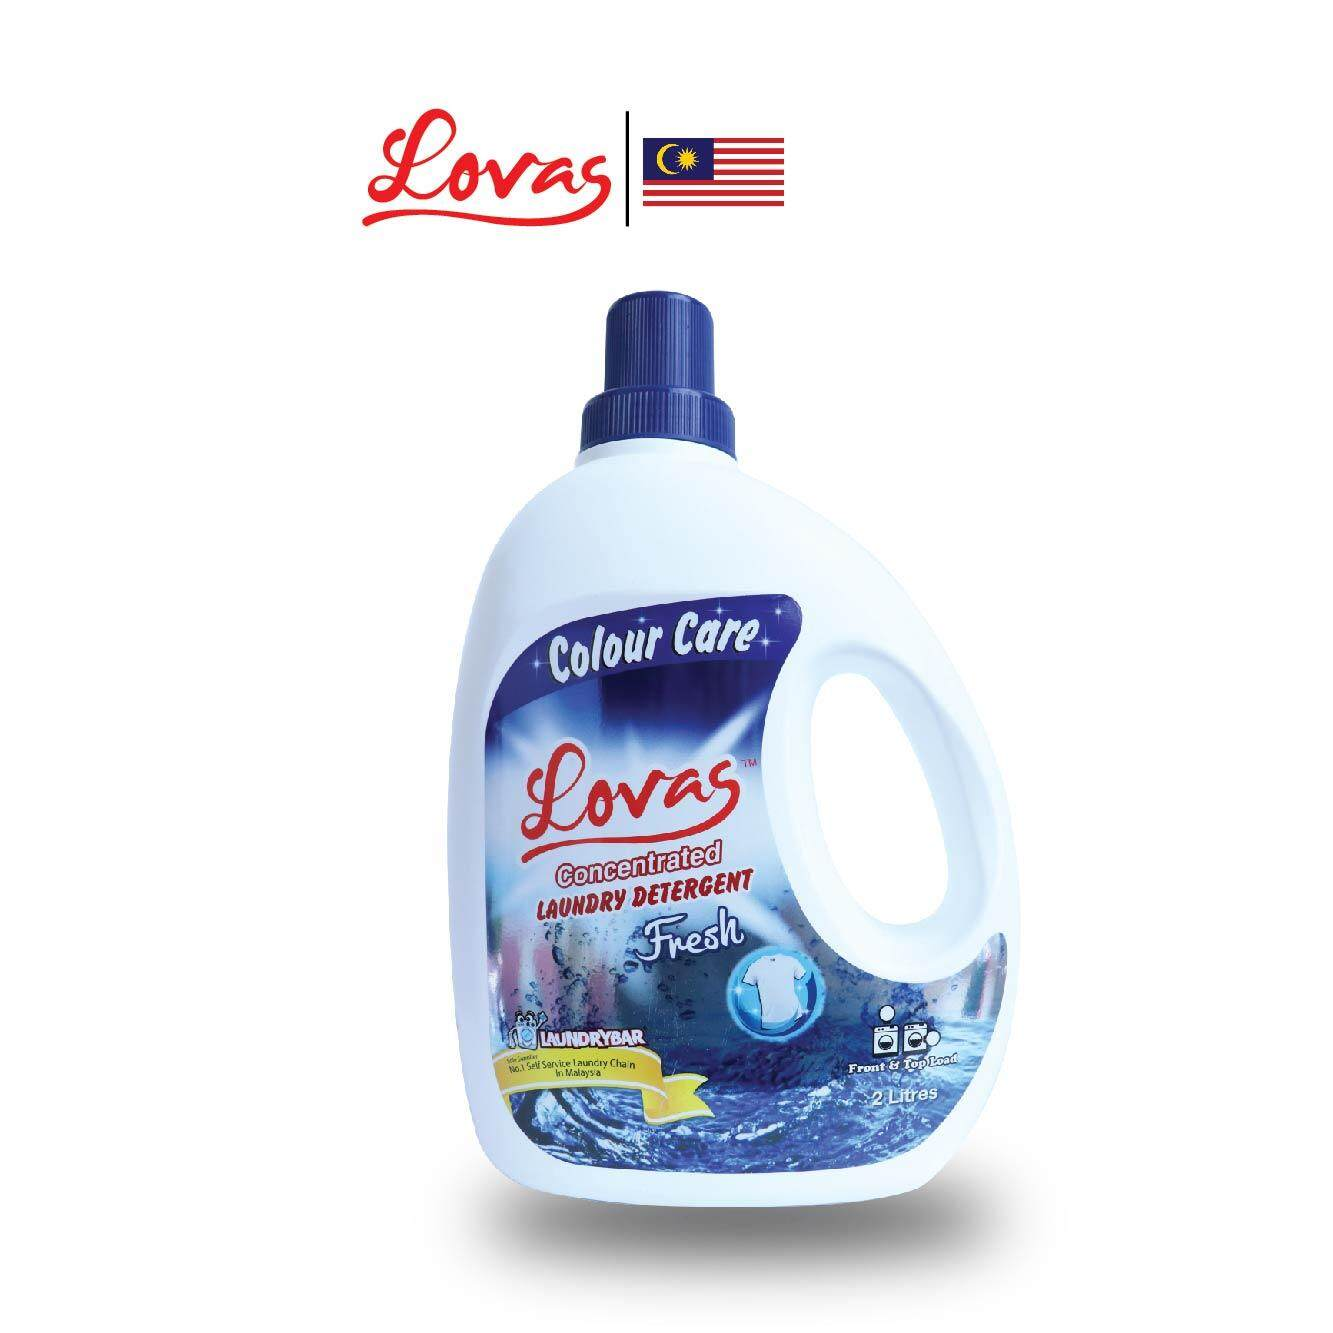 LOVAS Concentrated Laundry Detergent - 2L [Fresh]